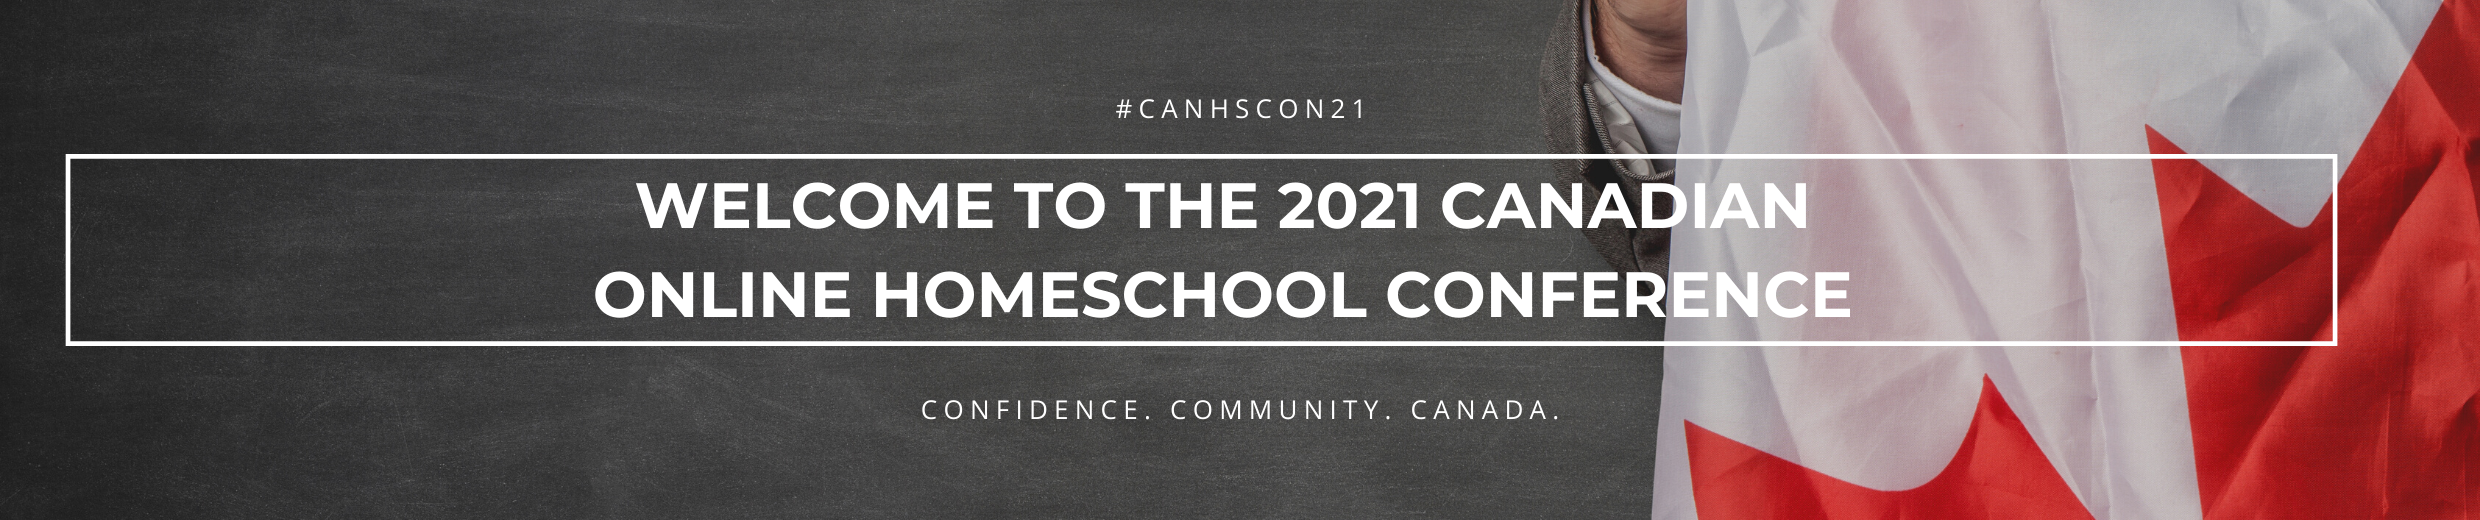 CANHSCON21Banner